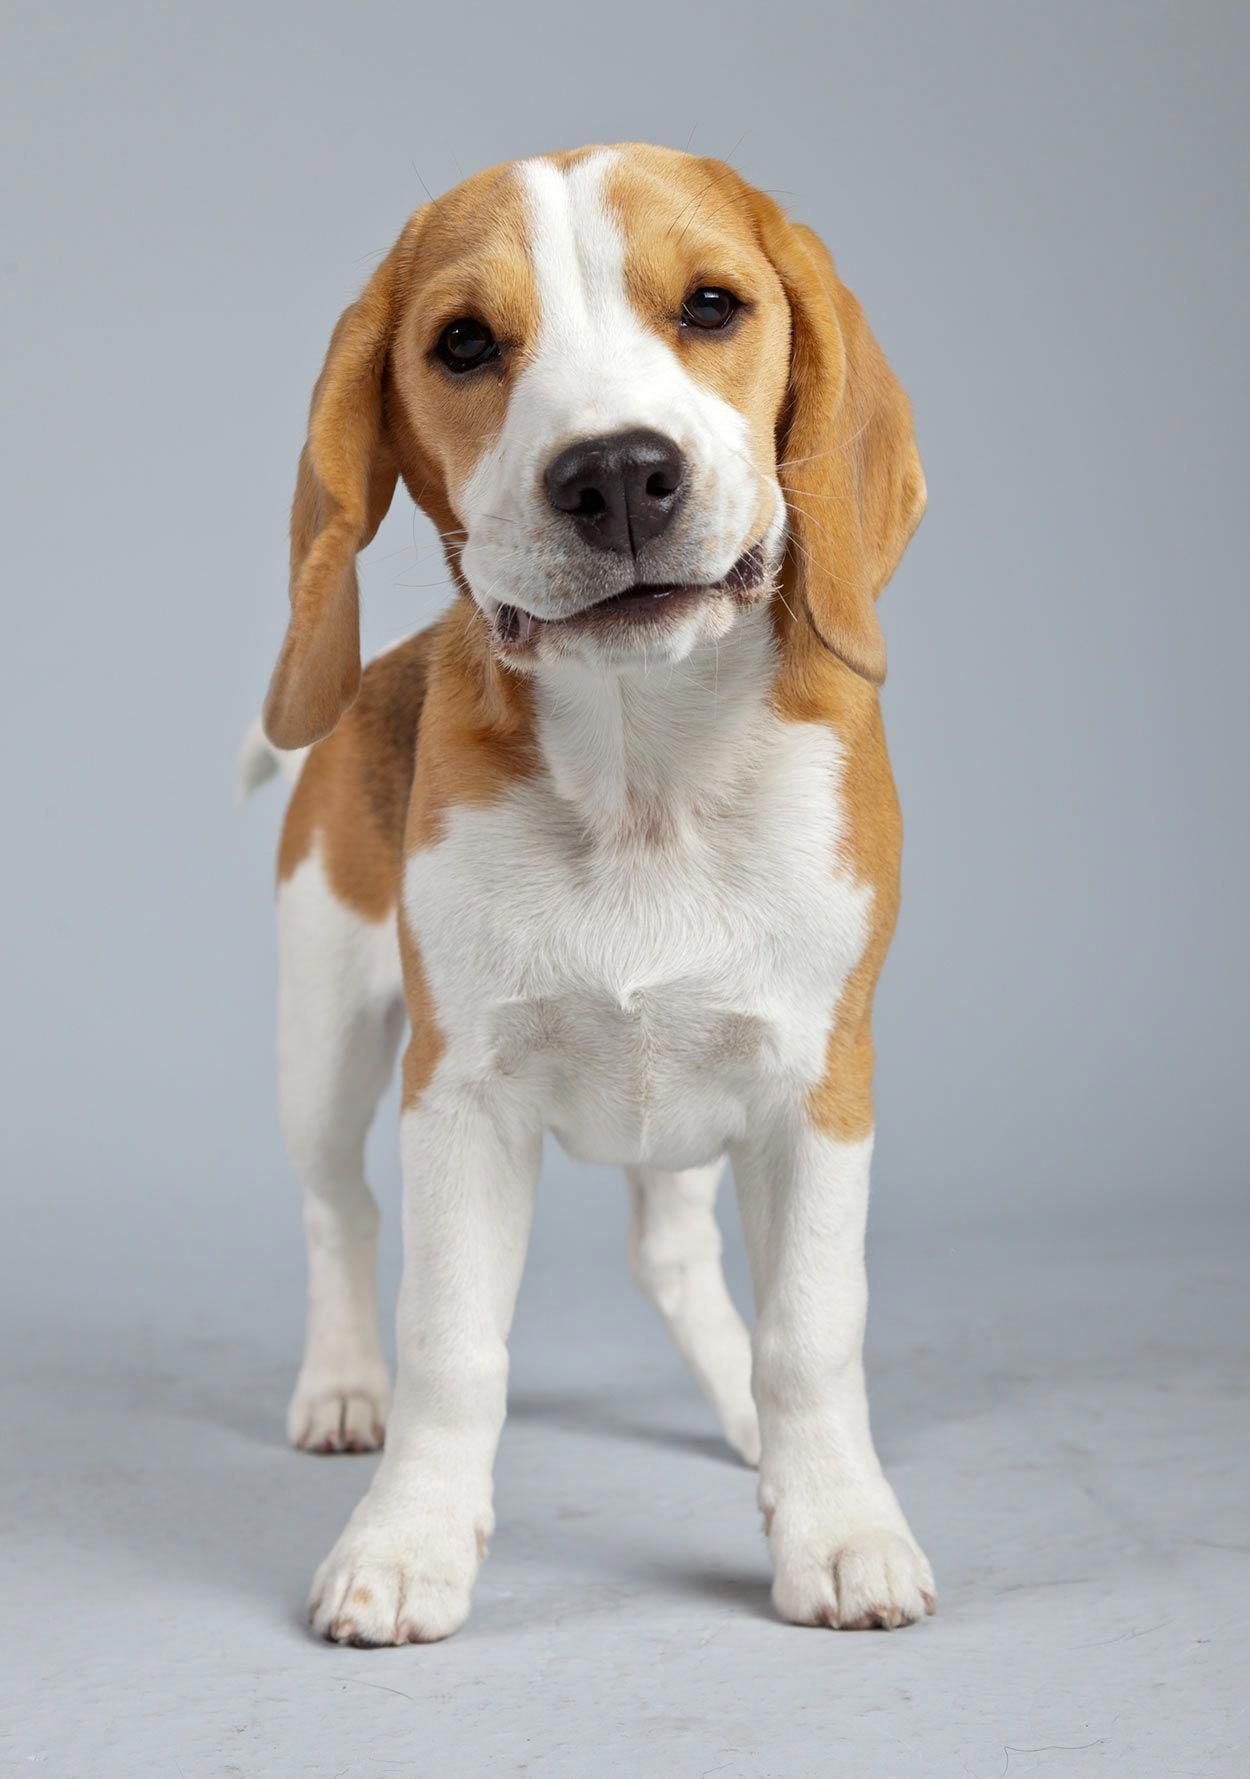 Lemon Beagle Beagle Puppy Lemon Beagle Beagle Dog